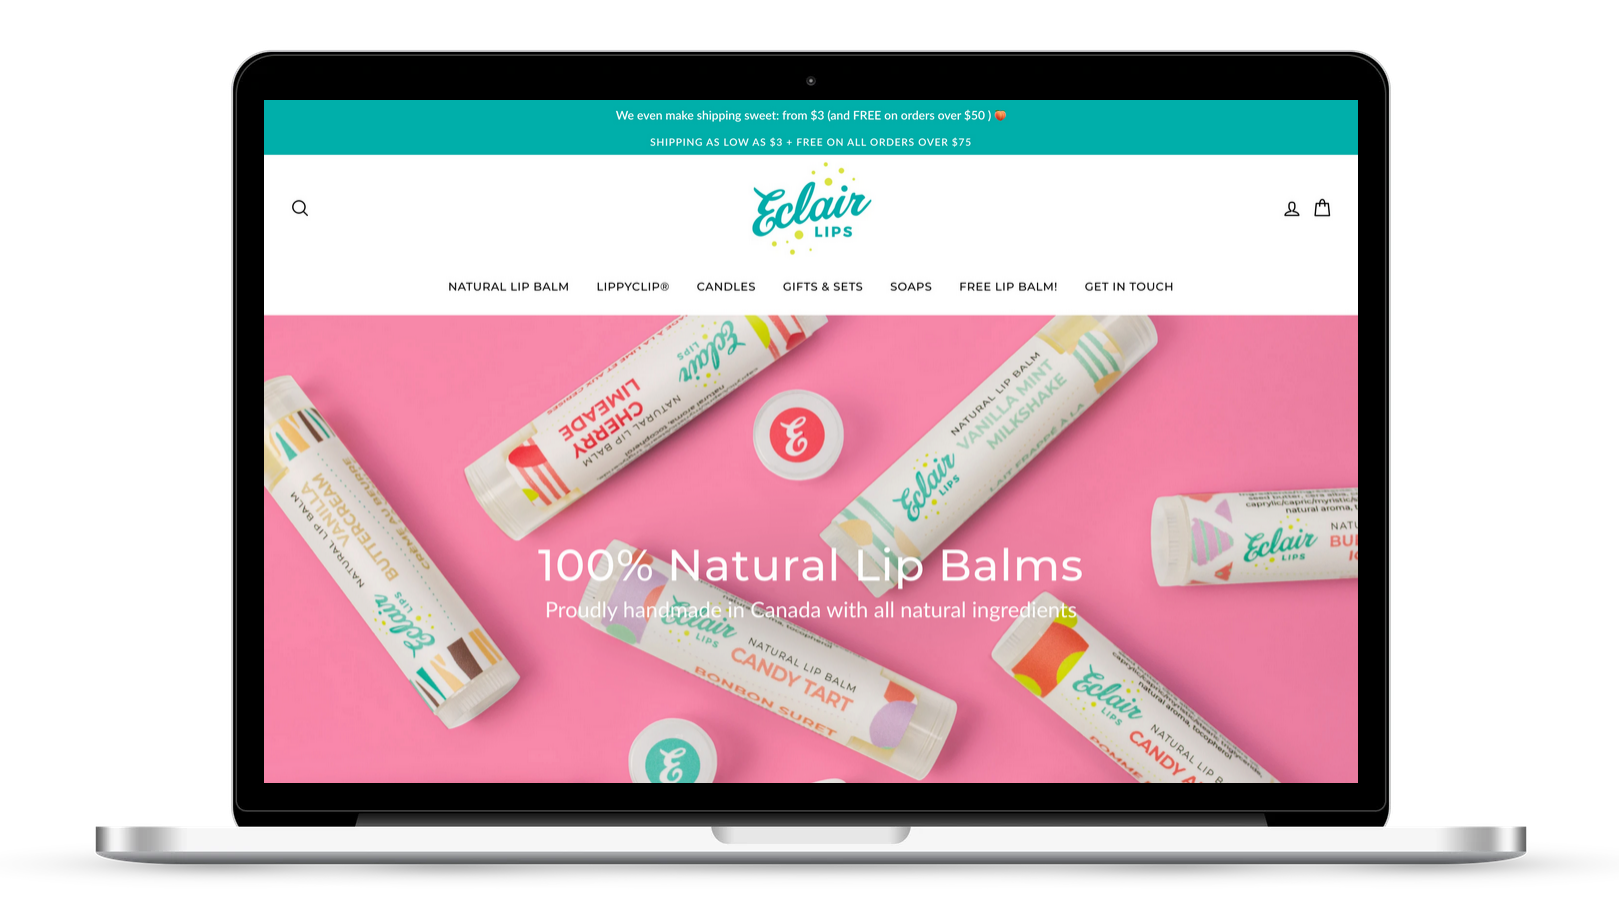 Shopify website for natural lip balms